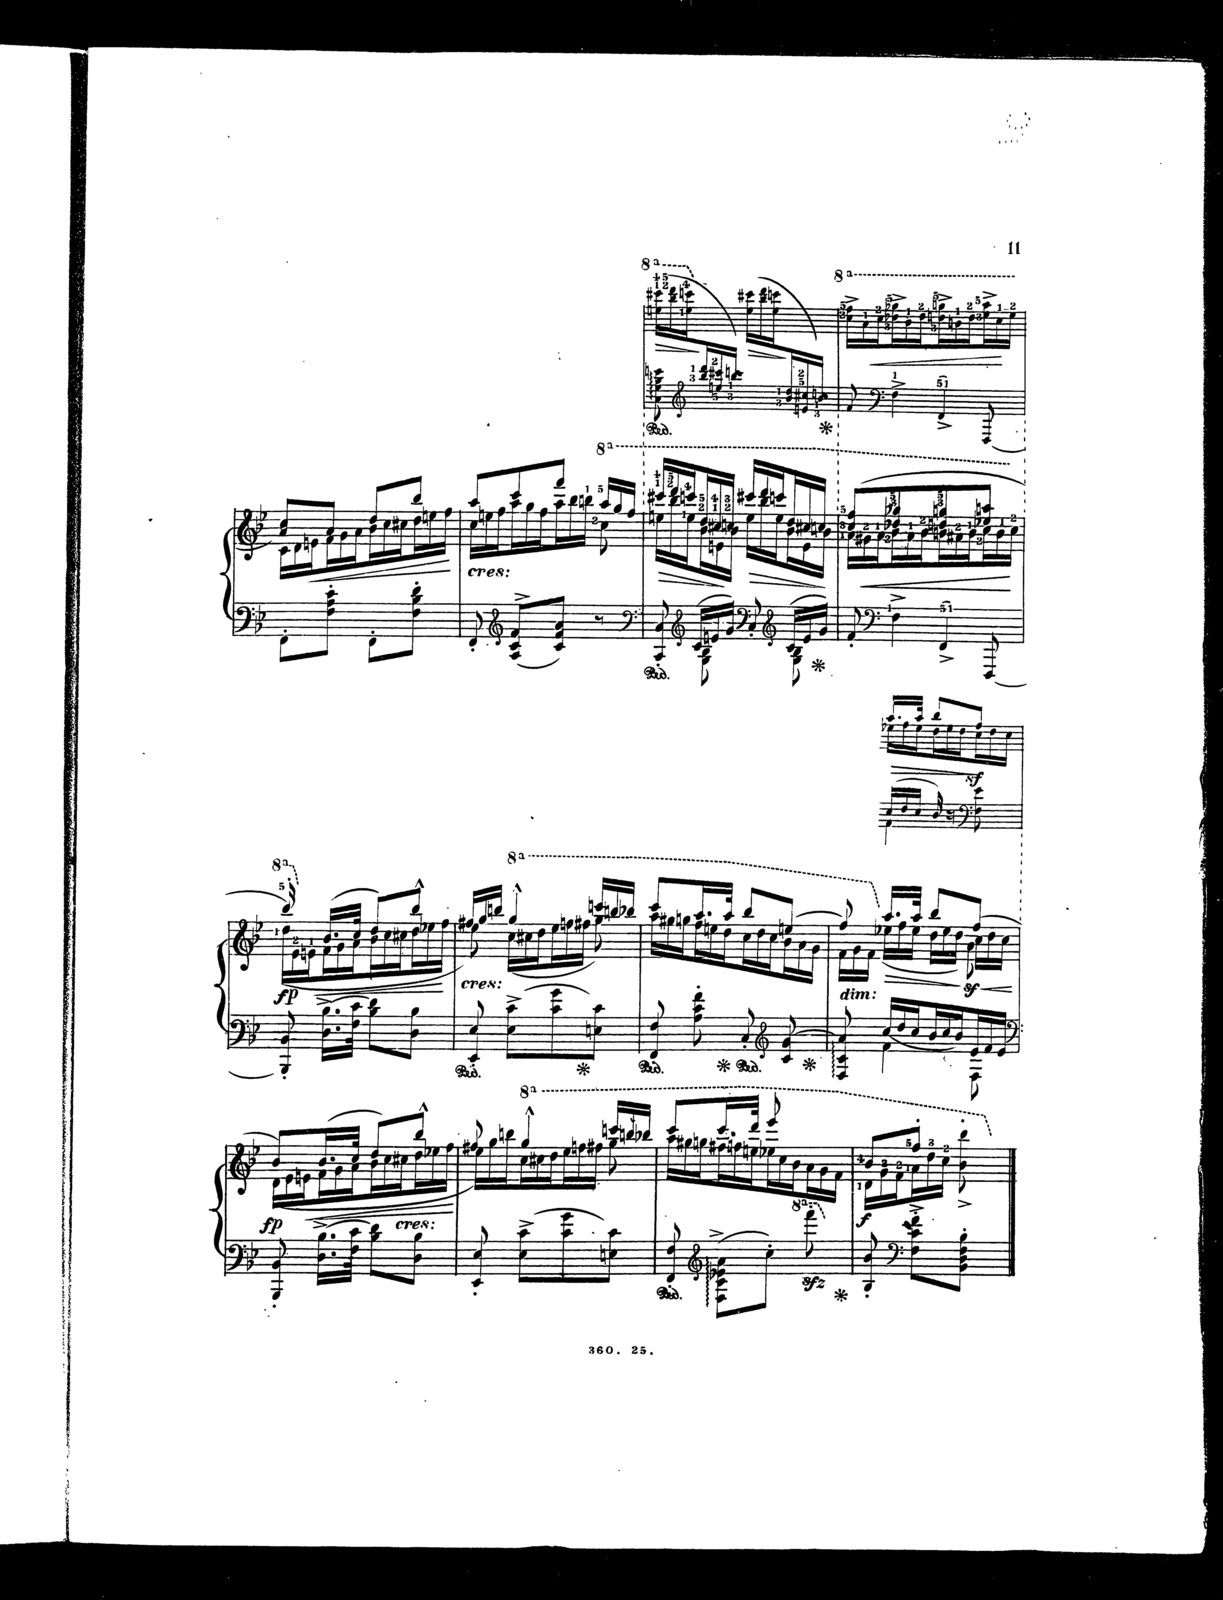 Chopin's introduction and variations opus 2 - PICRYL Public